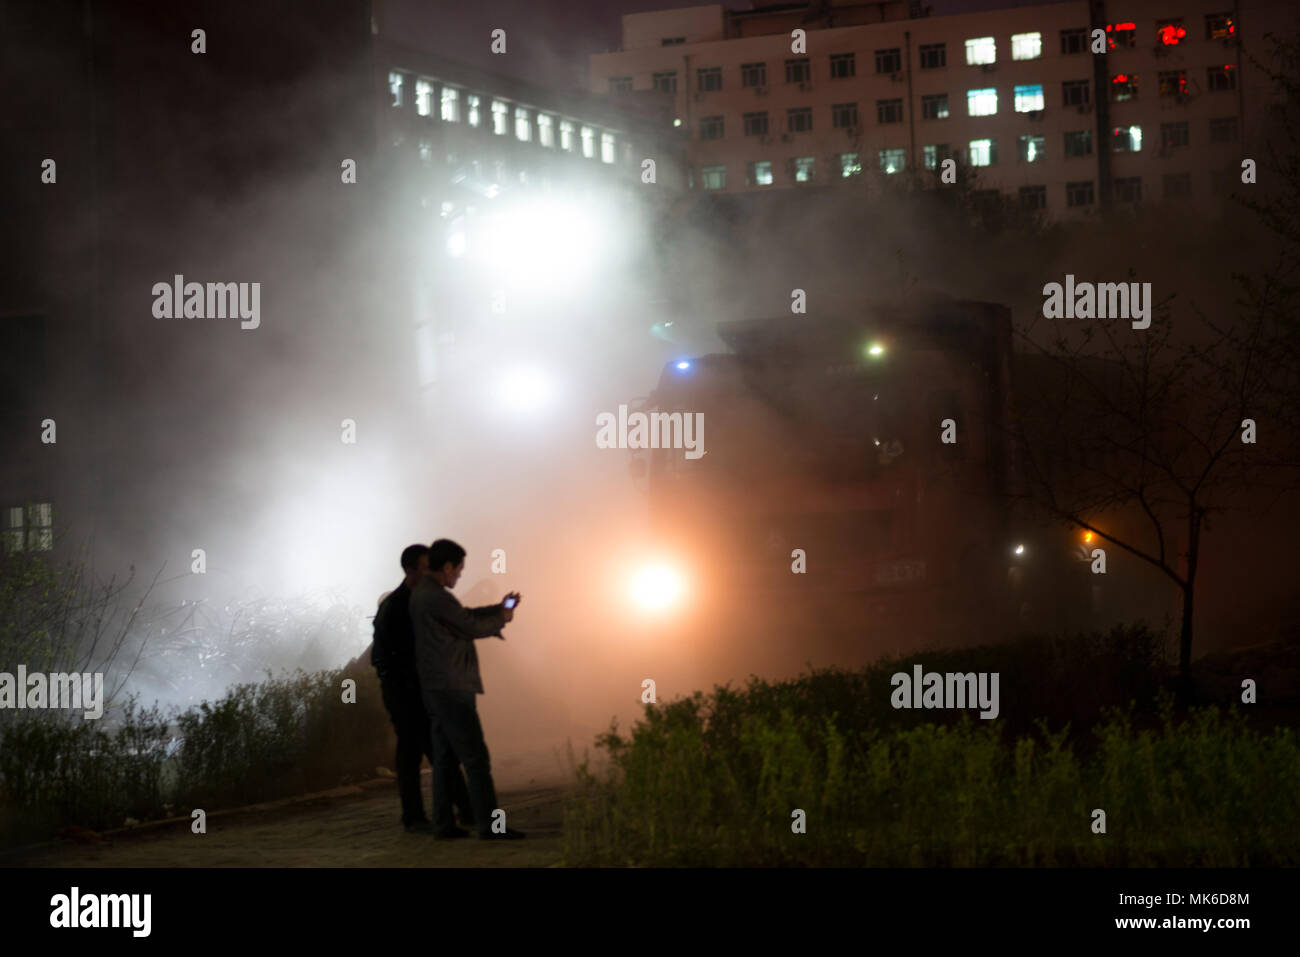 environmental, night, demolish apartments at night, pollution to residents, no-care, 10pm, dust clouds - Stock Image